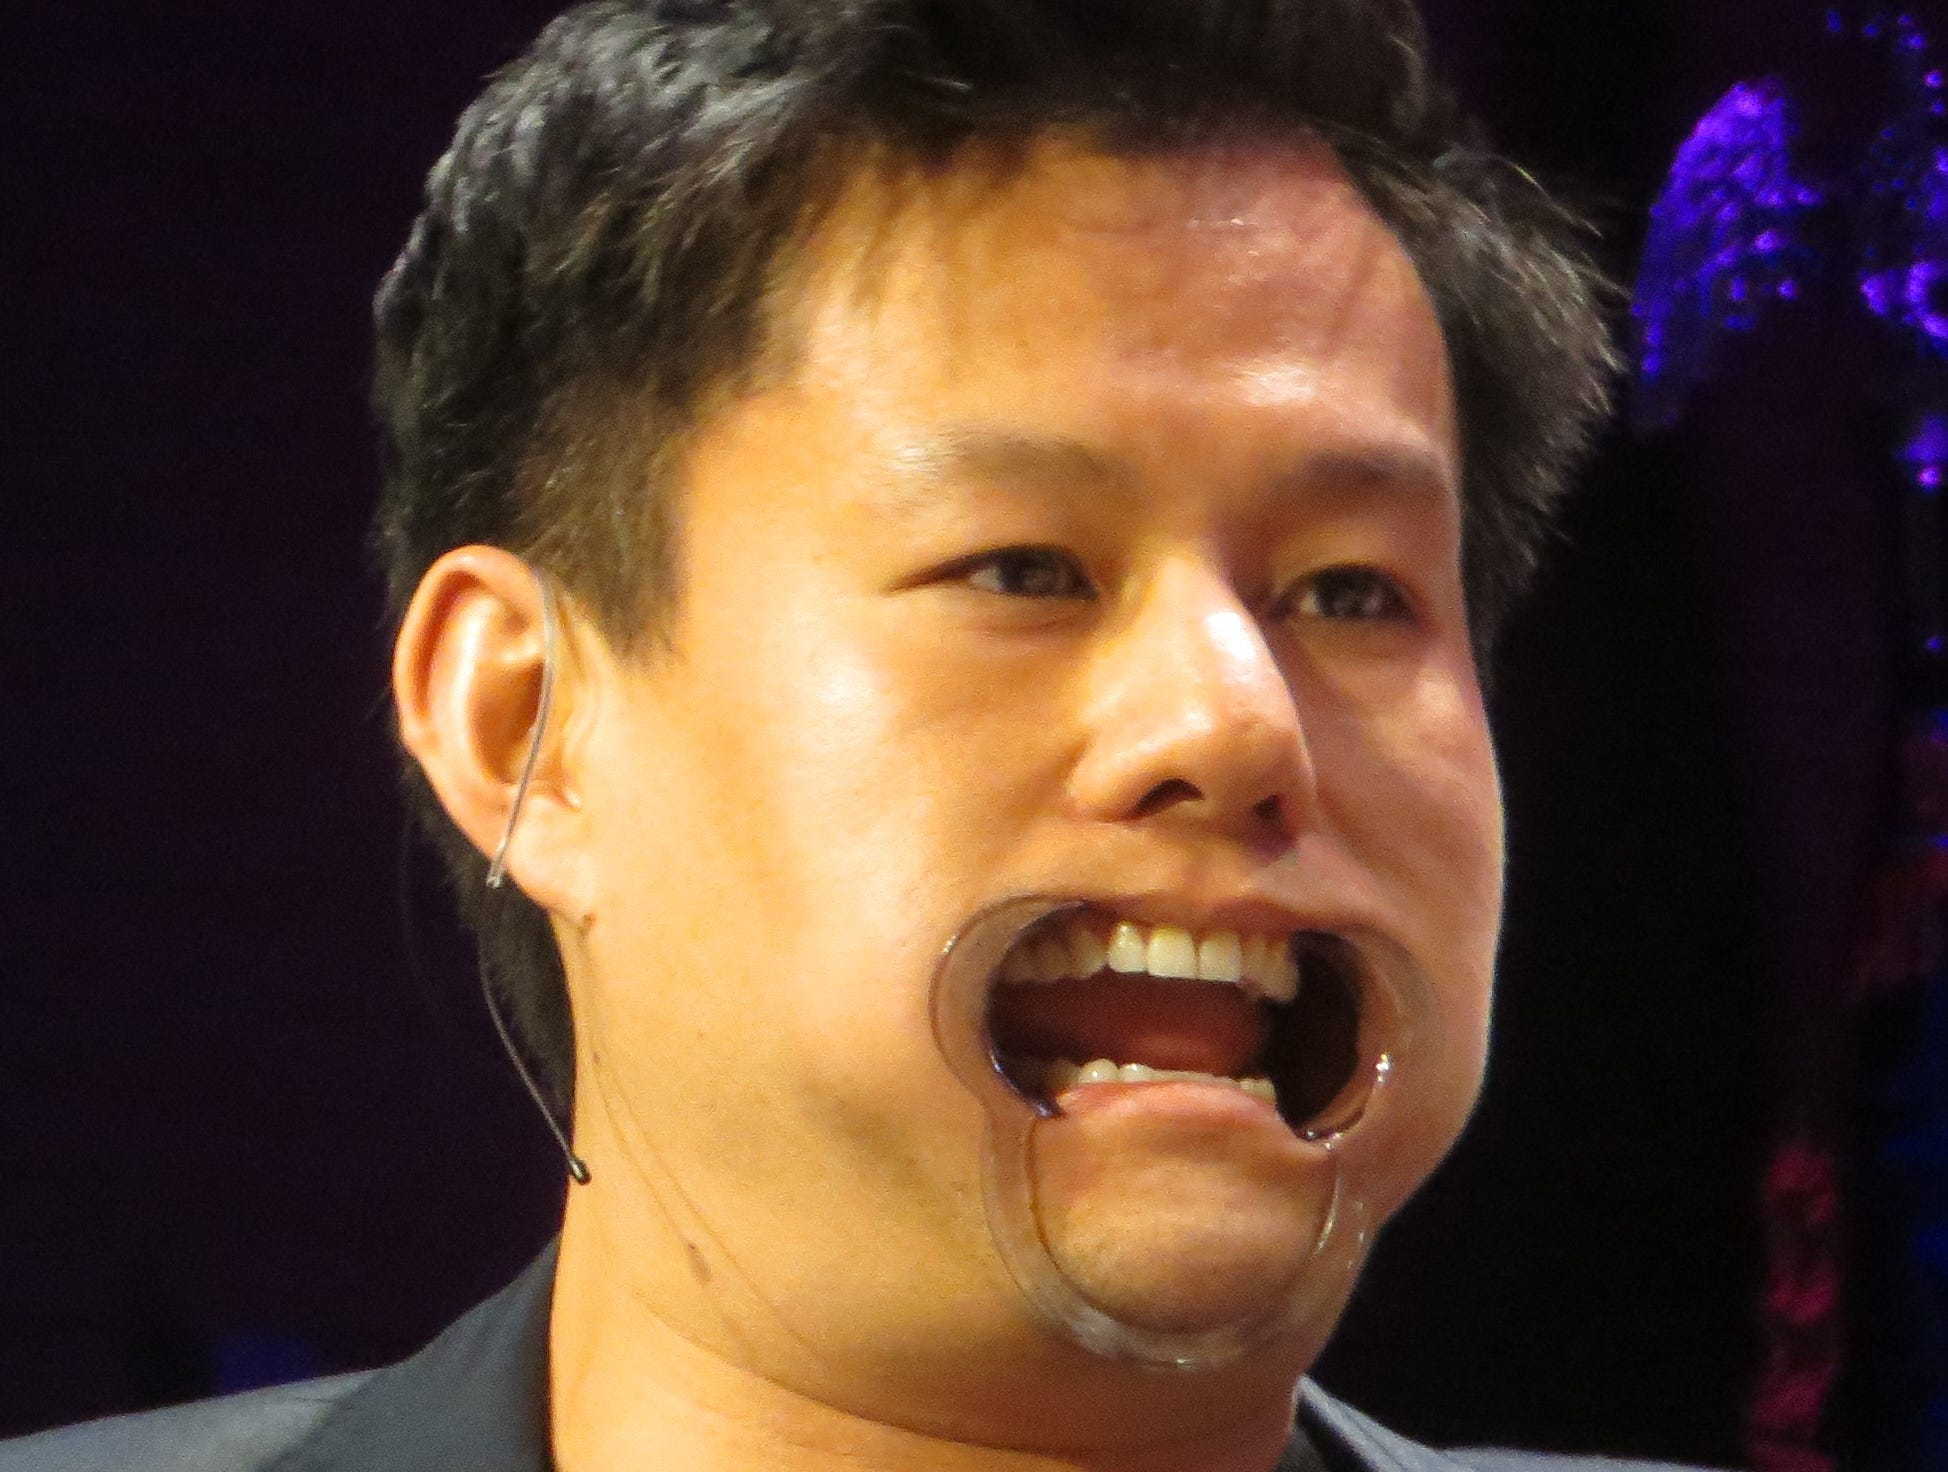 Kelvin Moon Loh takes part in Game Night at BroadwayCon 2019, held Jan. 11 to 13, 2019, at the New York Hilton Midtown in Manhattan.